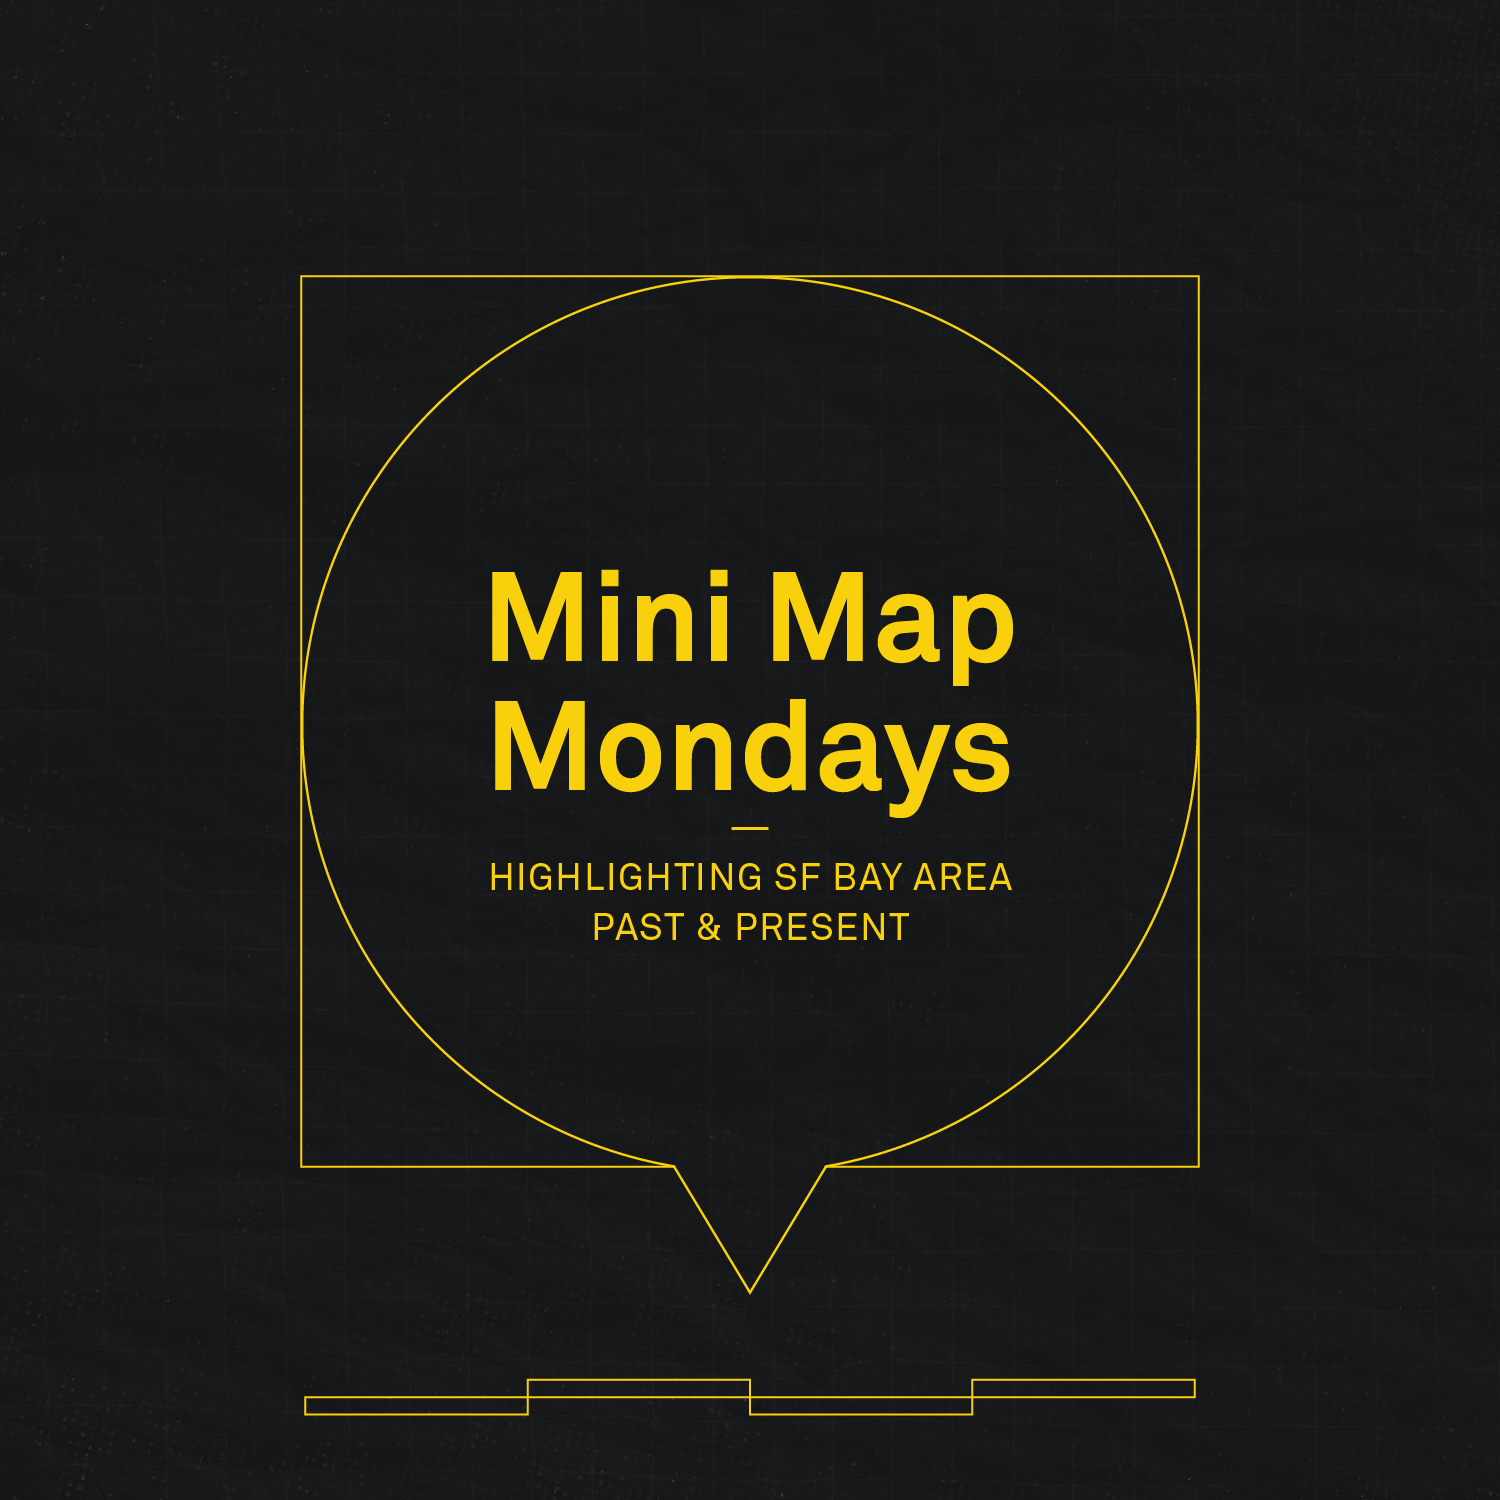 MW-Mini Map Mondays-coverpage_V2-01.png